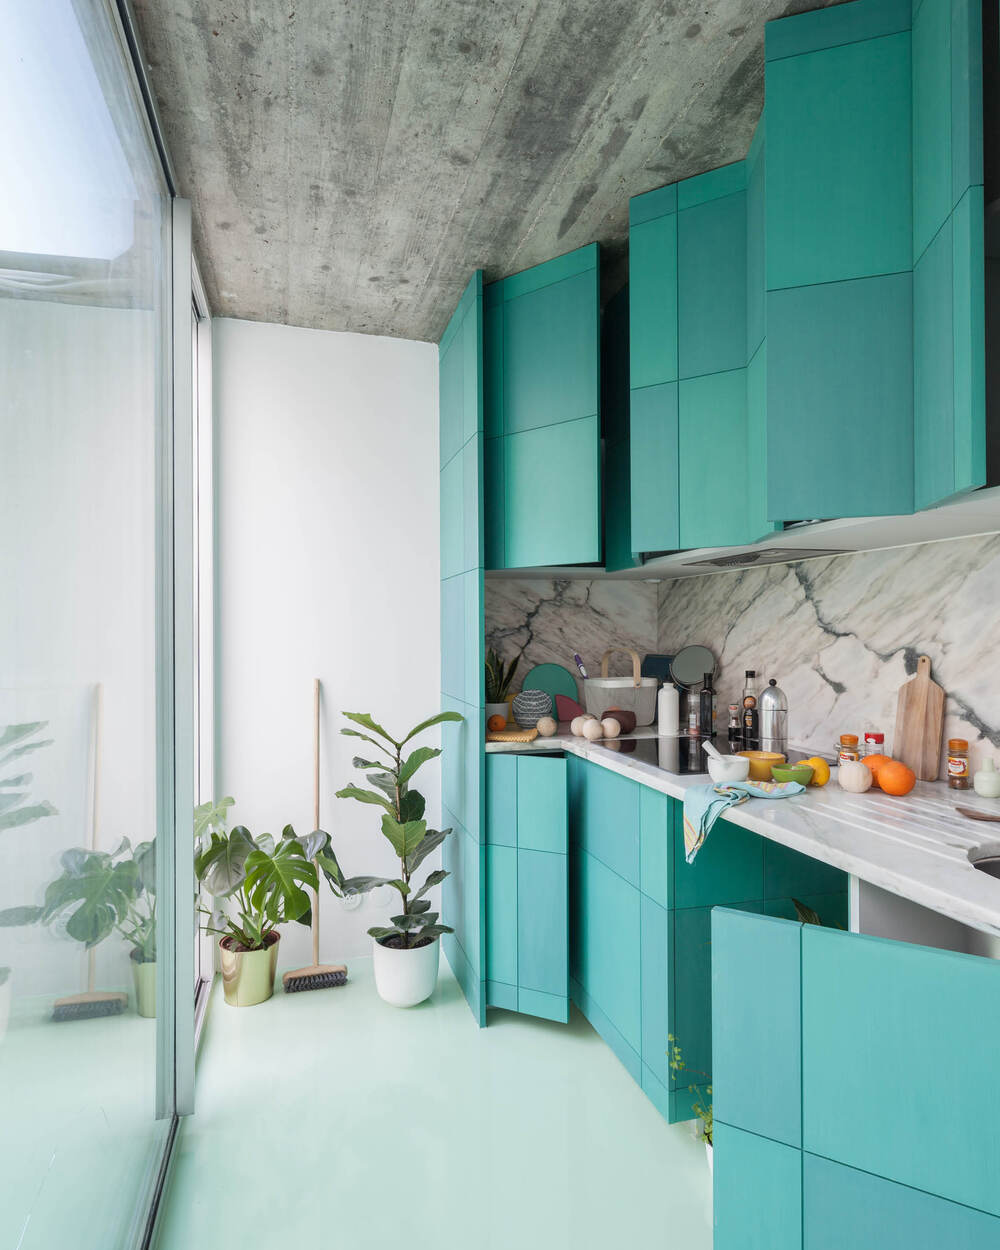 The kitchen has vibrant green cabinetry across from the glass wal.